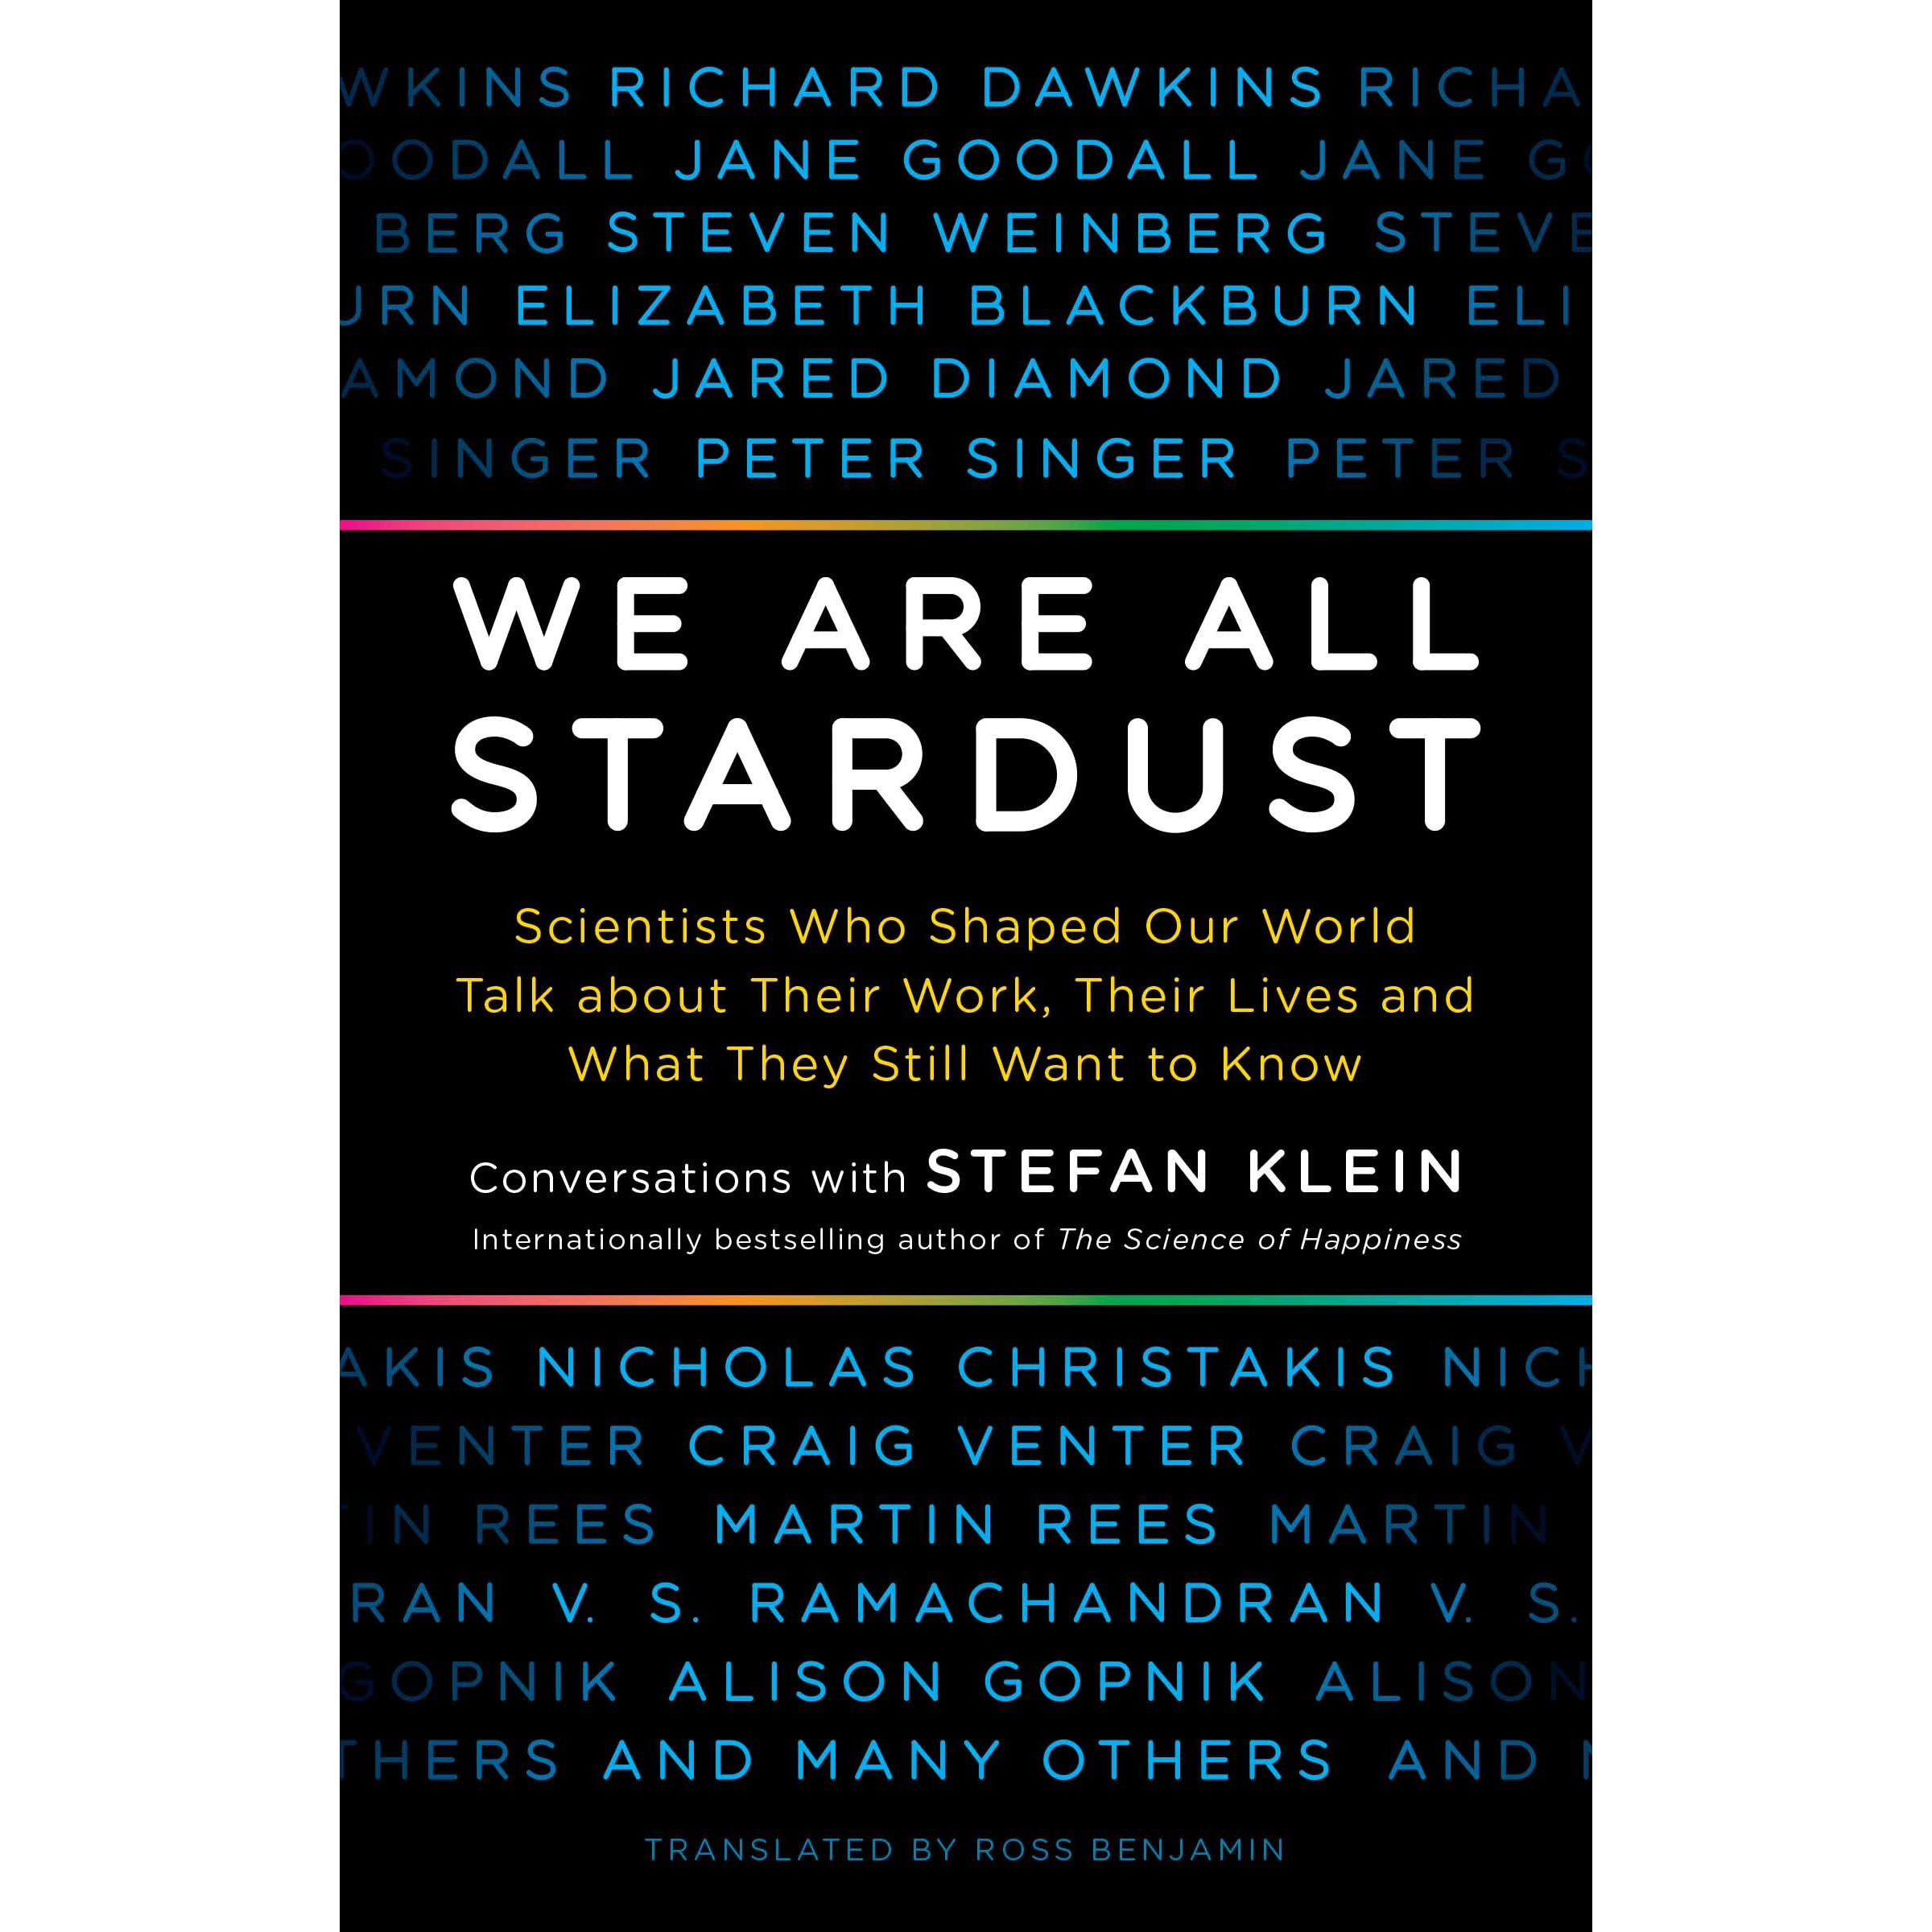 Stardust Libro We Are All Stardust Leading Scientists Talk About Their Work